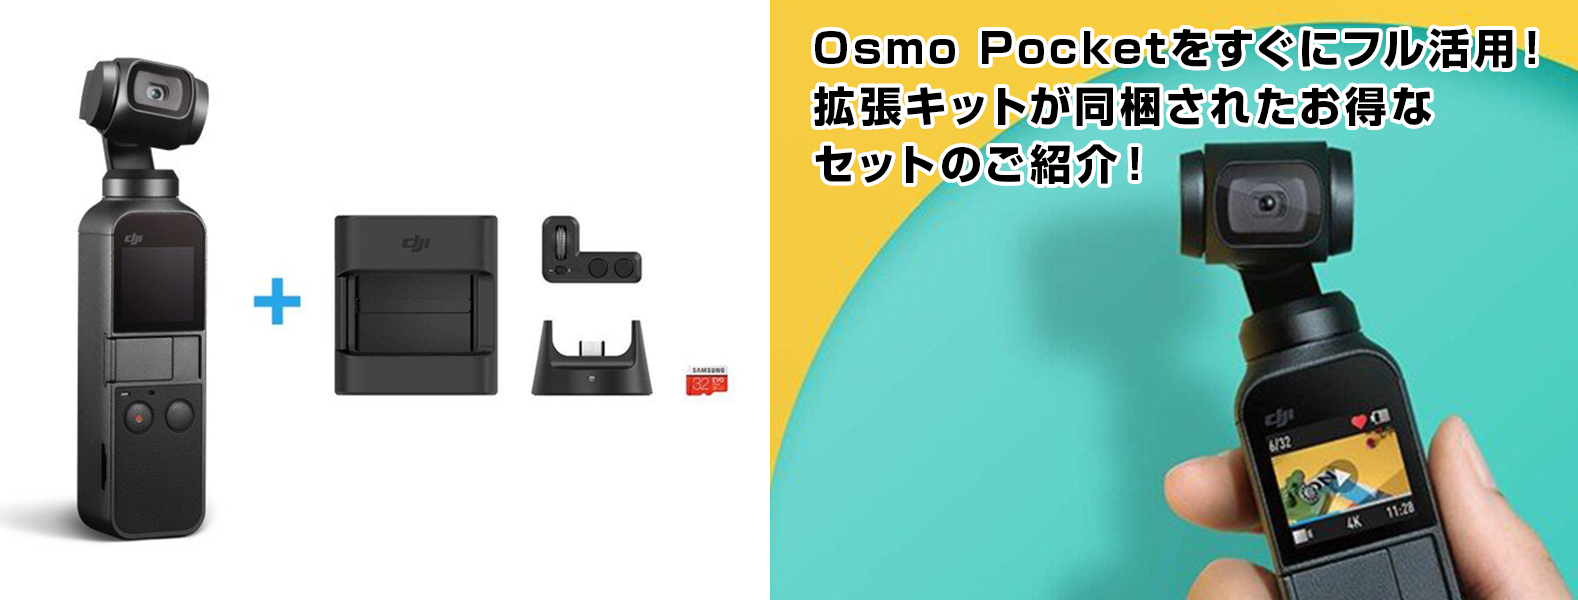 Osmo Pocketをすぐにフル活用! 拡張キット セットのご紹介!